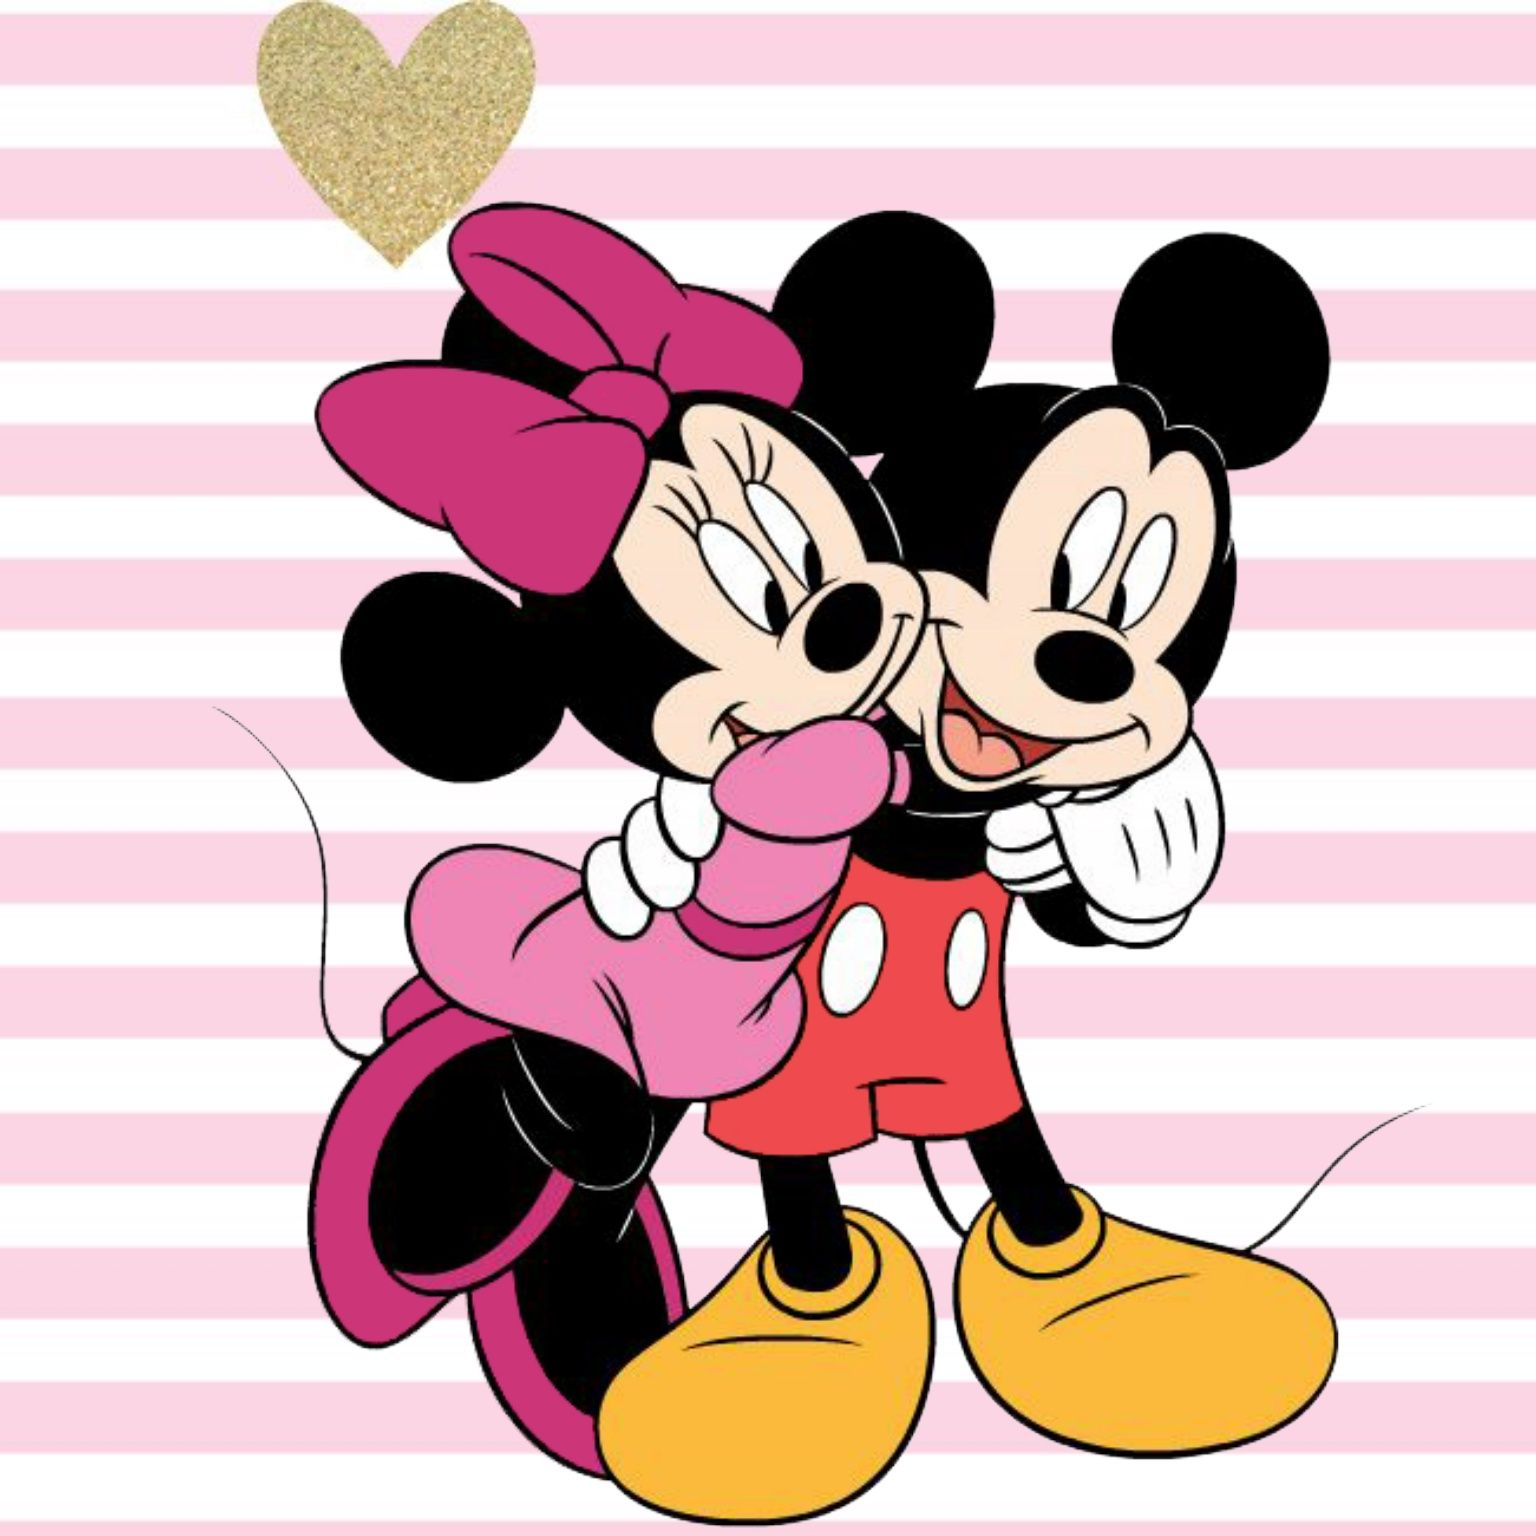 Miki maus clipart image free stock Minnie giving a hug to her sweetheart Mickey. | My Favorite ... image free stock